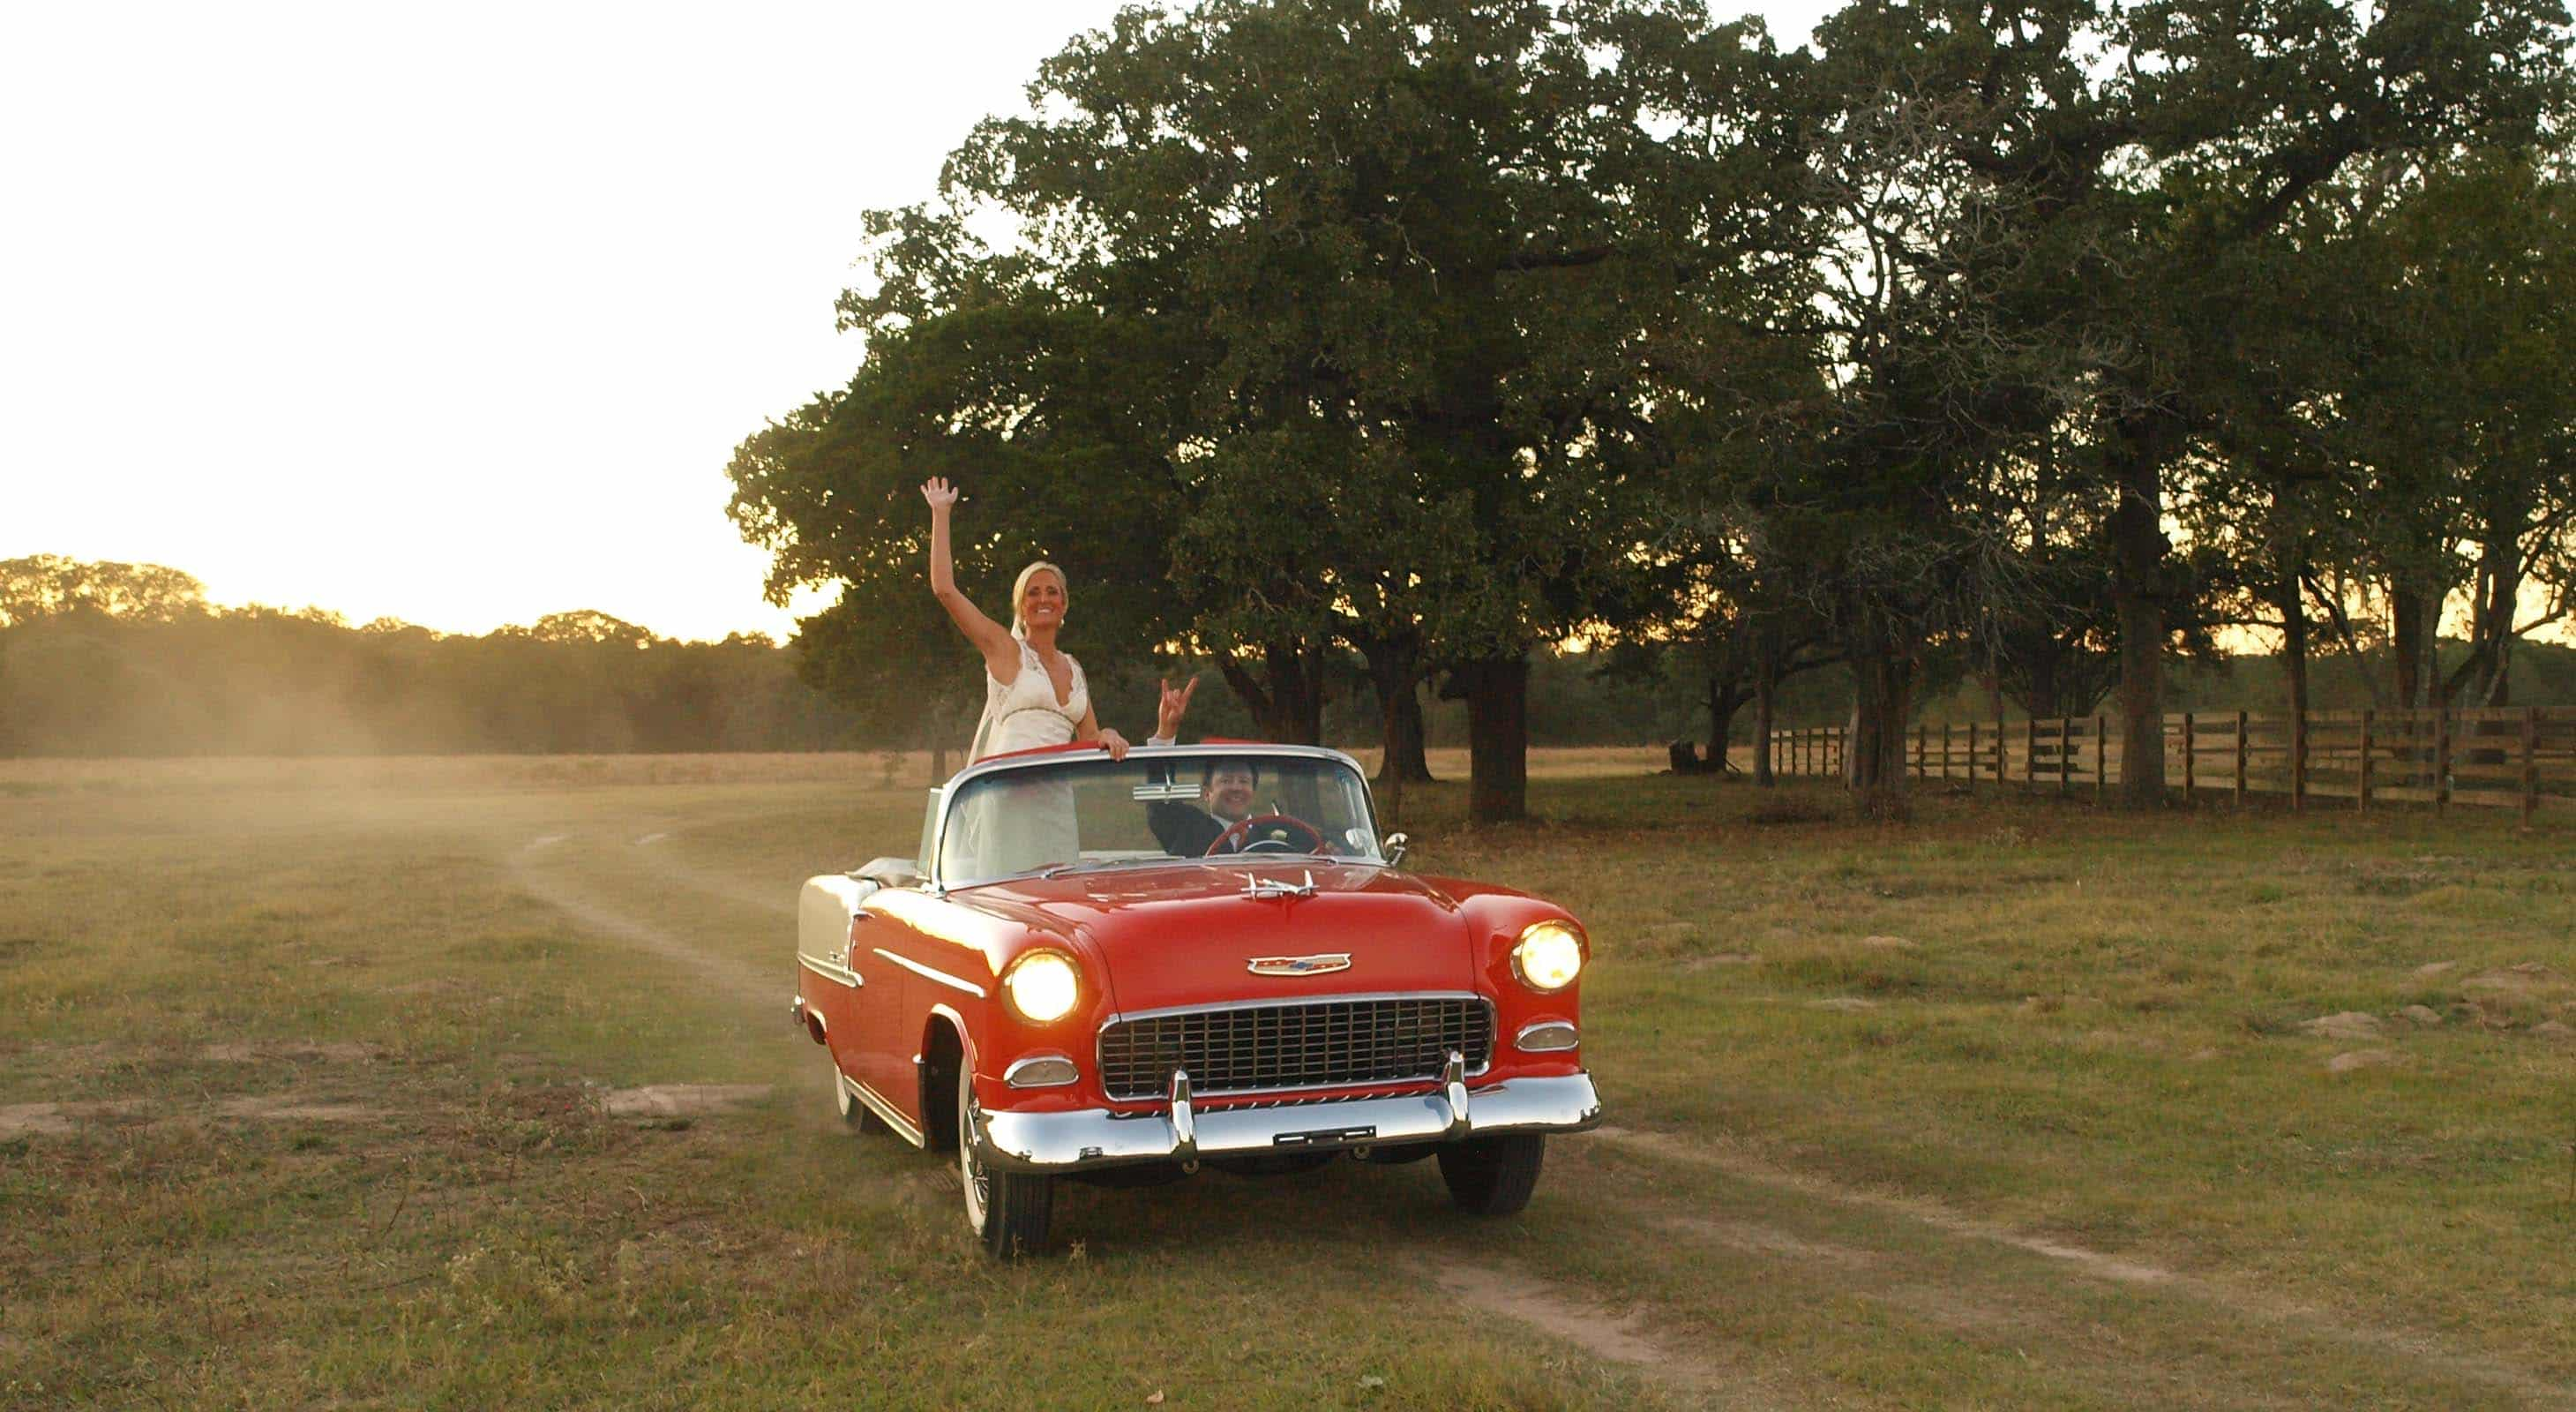 Bride and groom driving in a Red and white classic car on a BlissWood Ranch road